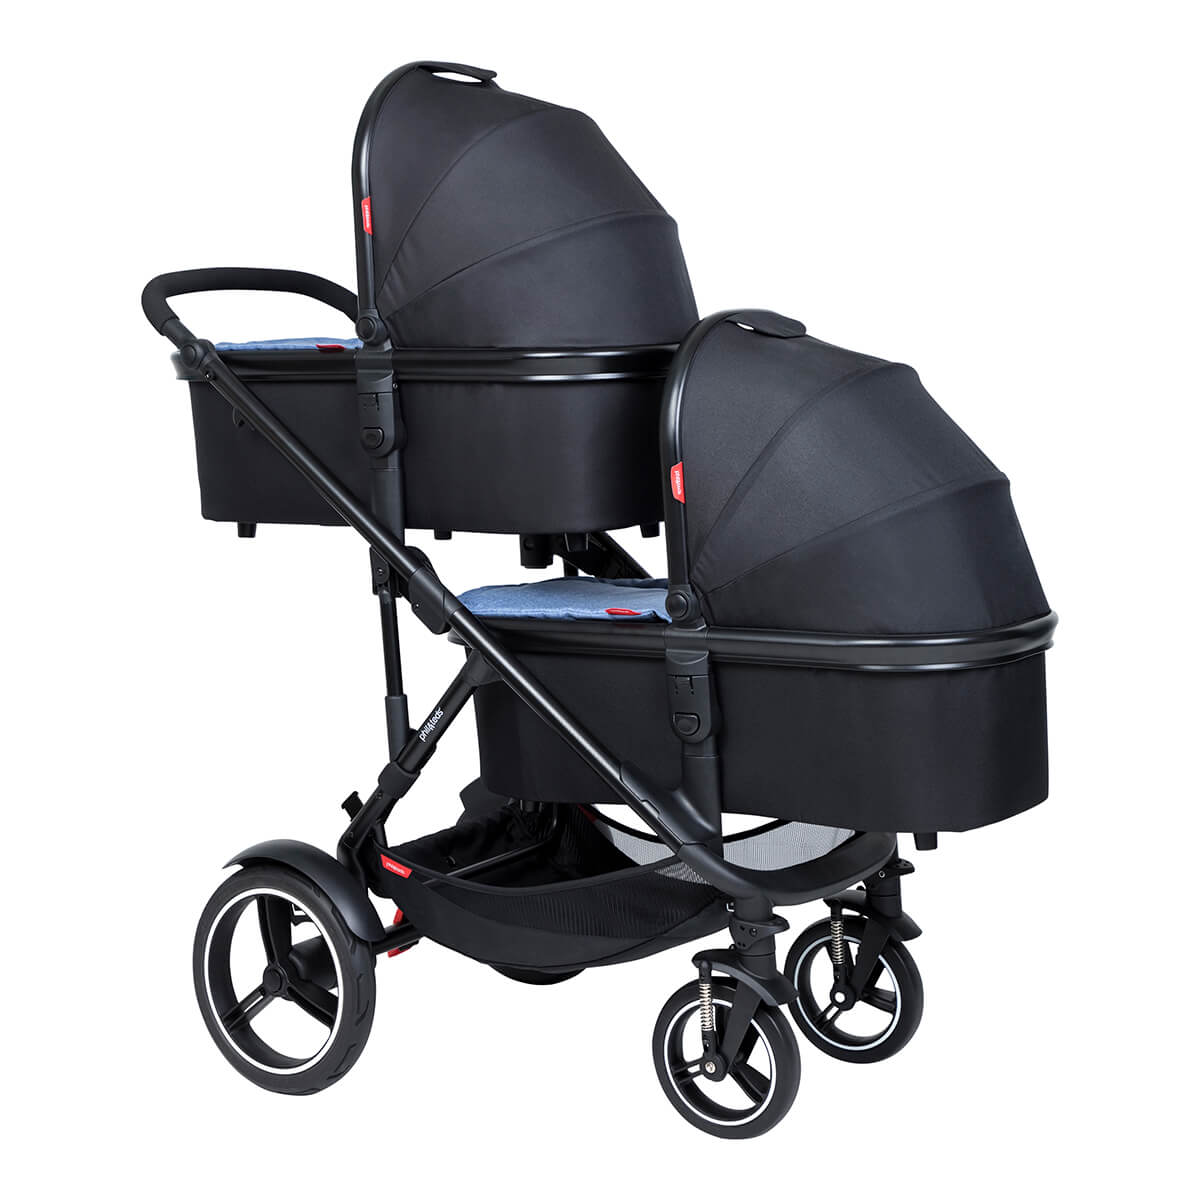 https://cdn.accentuate.io/4509867409505/19793940447402/philteds-voyager-inline-buggy-with-double-snug-carrycots-v1626485365383.jpg?1200x1200